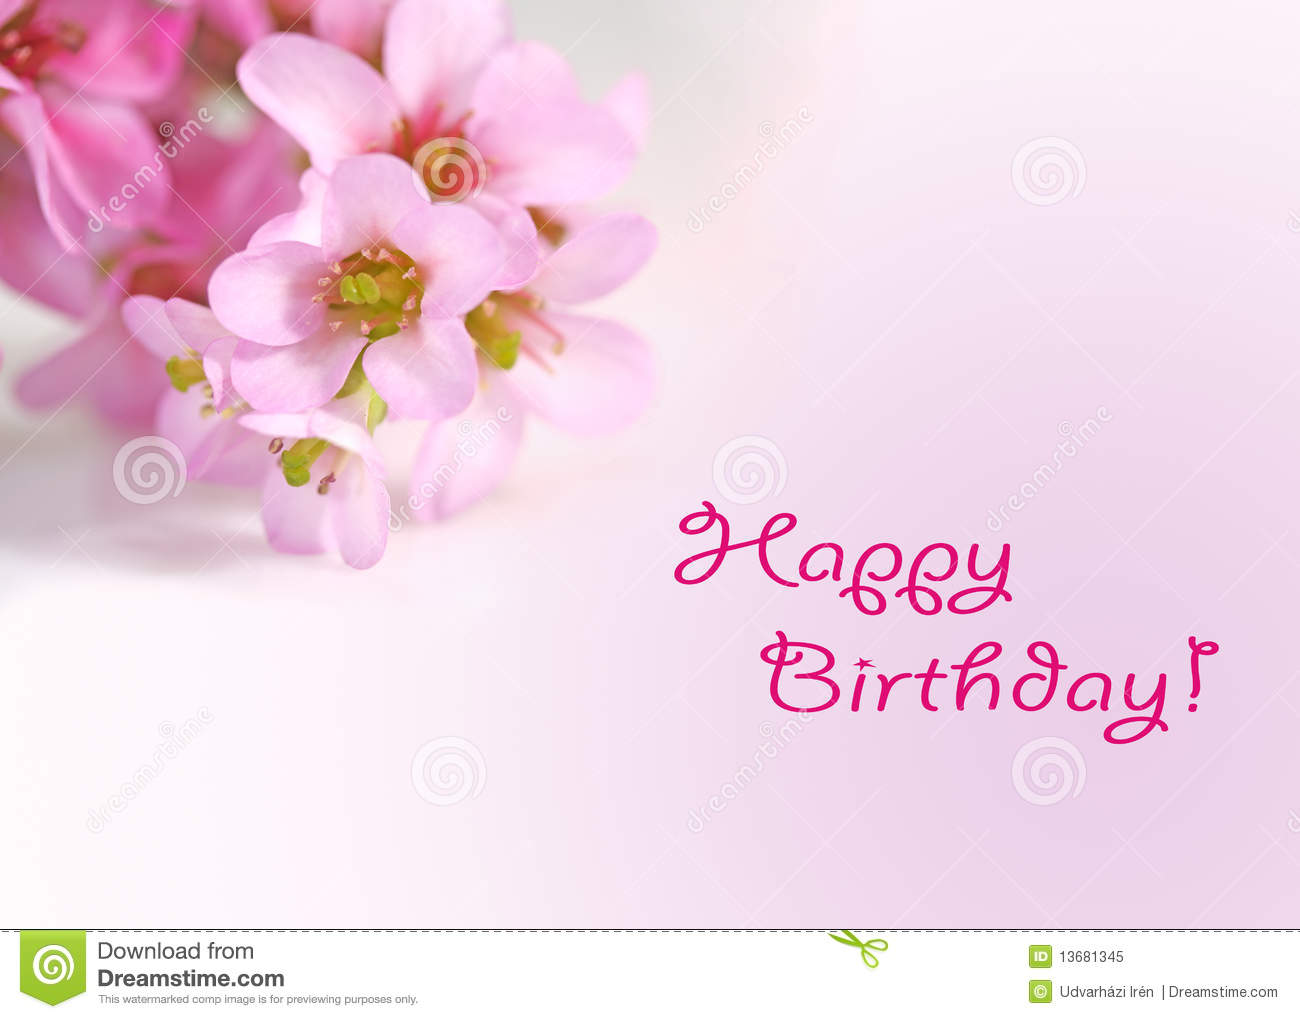 birthday greeting cards images with flowers ; happy-birthday-greetings-card-flowers-13681345